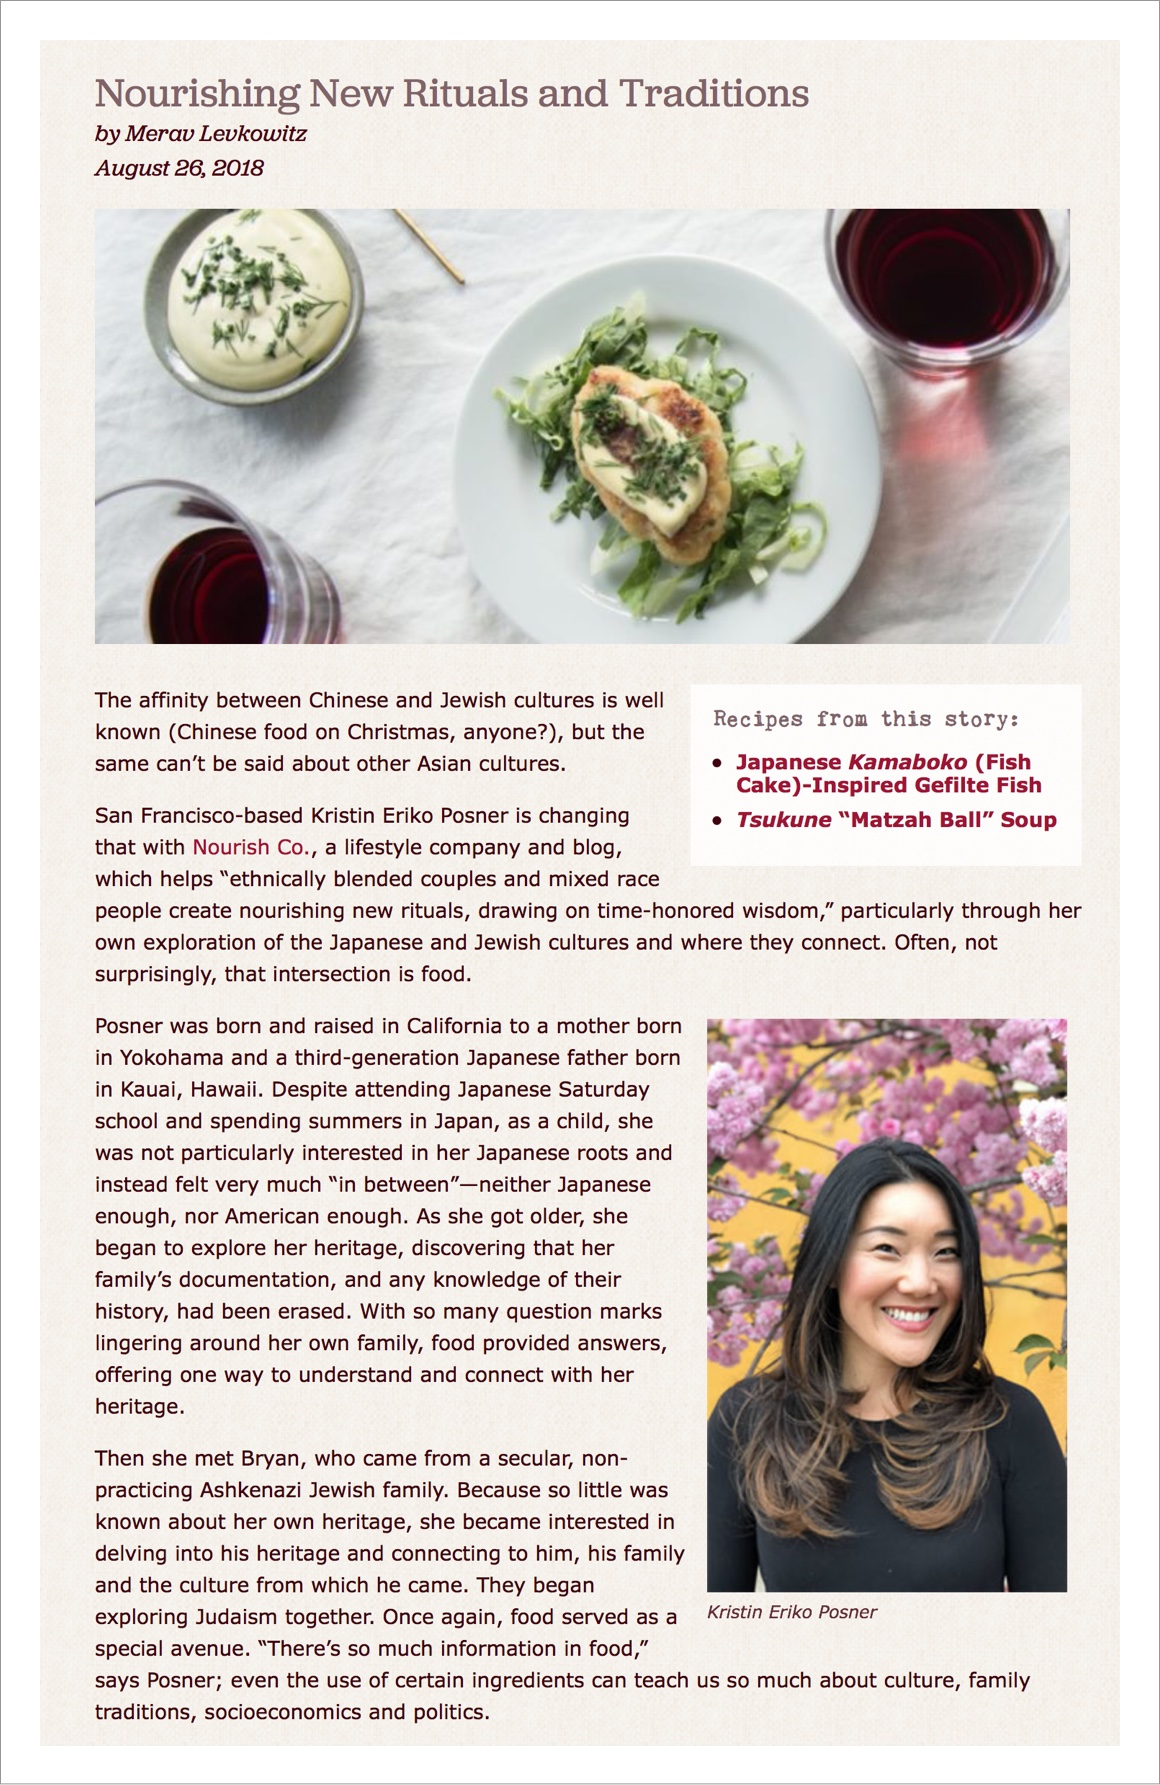 """""""Dishes like the Kamaboko Gefilte Fish and Black Sesame Hamantashen... are all examples of Posner's own 'cultural innovation,' which she ultimately hopes will inspire others... Sounds like a recipe for success to us."""